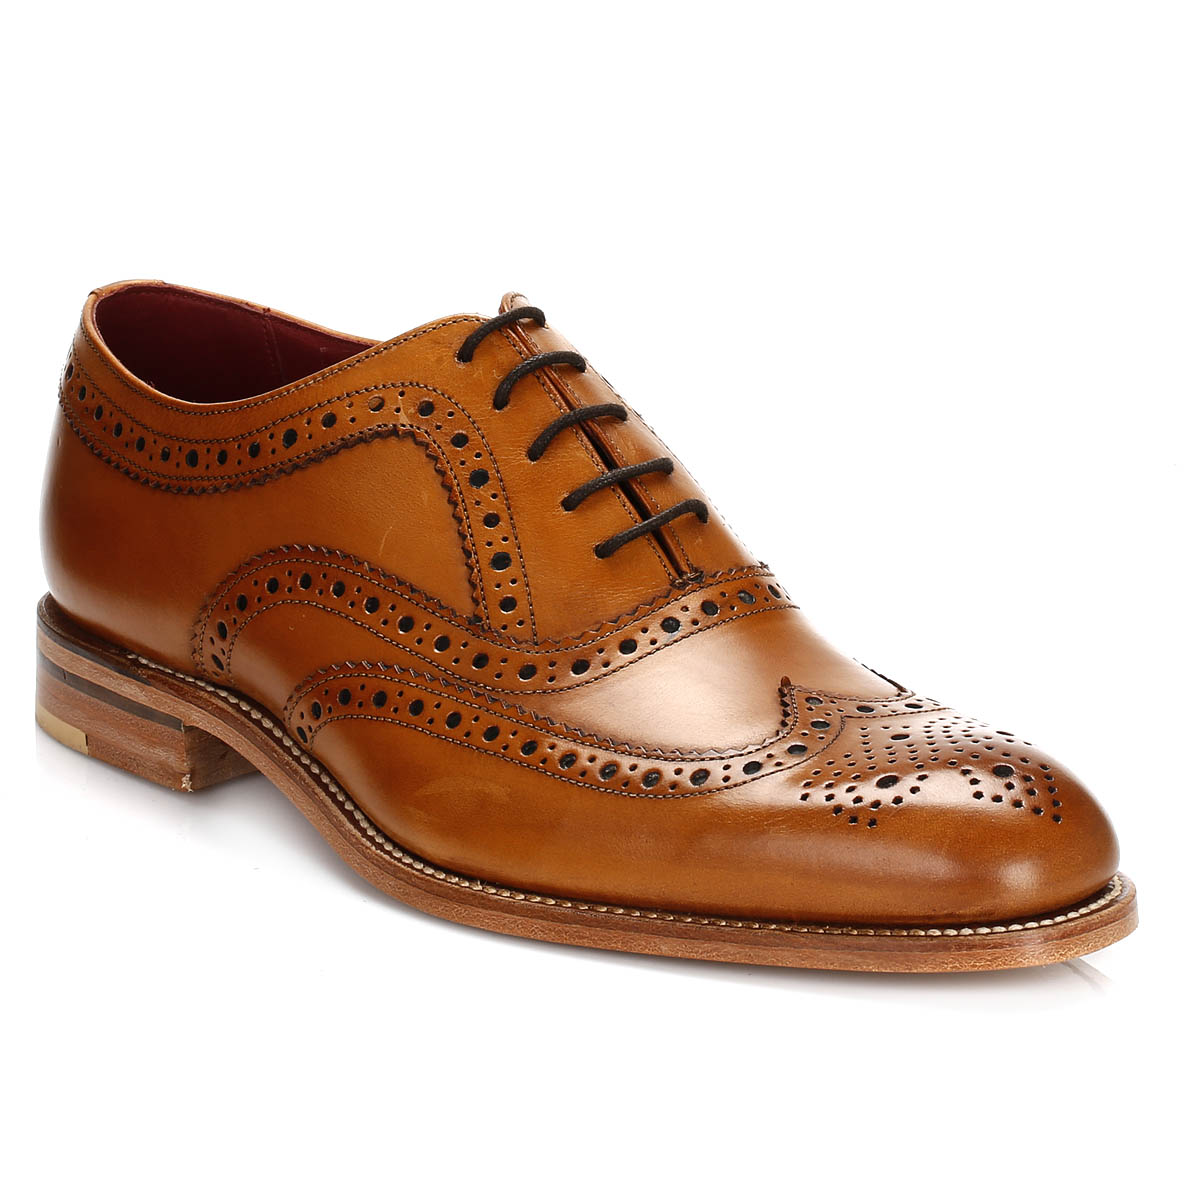 loake mens formal shoes leather smarts lace up dress